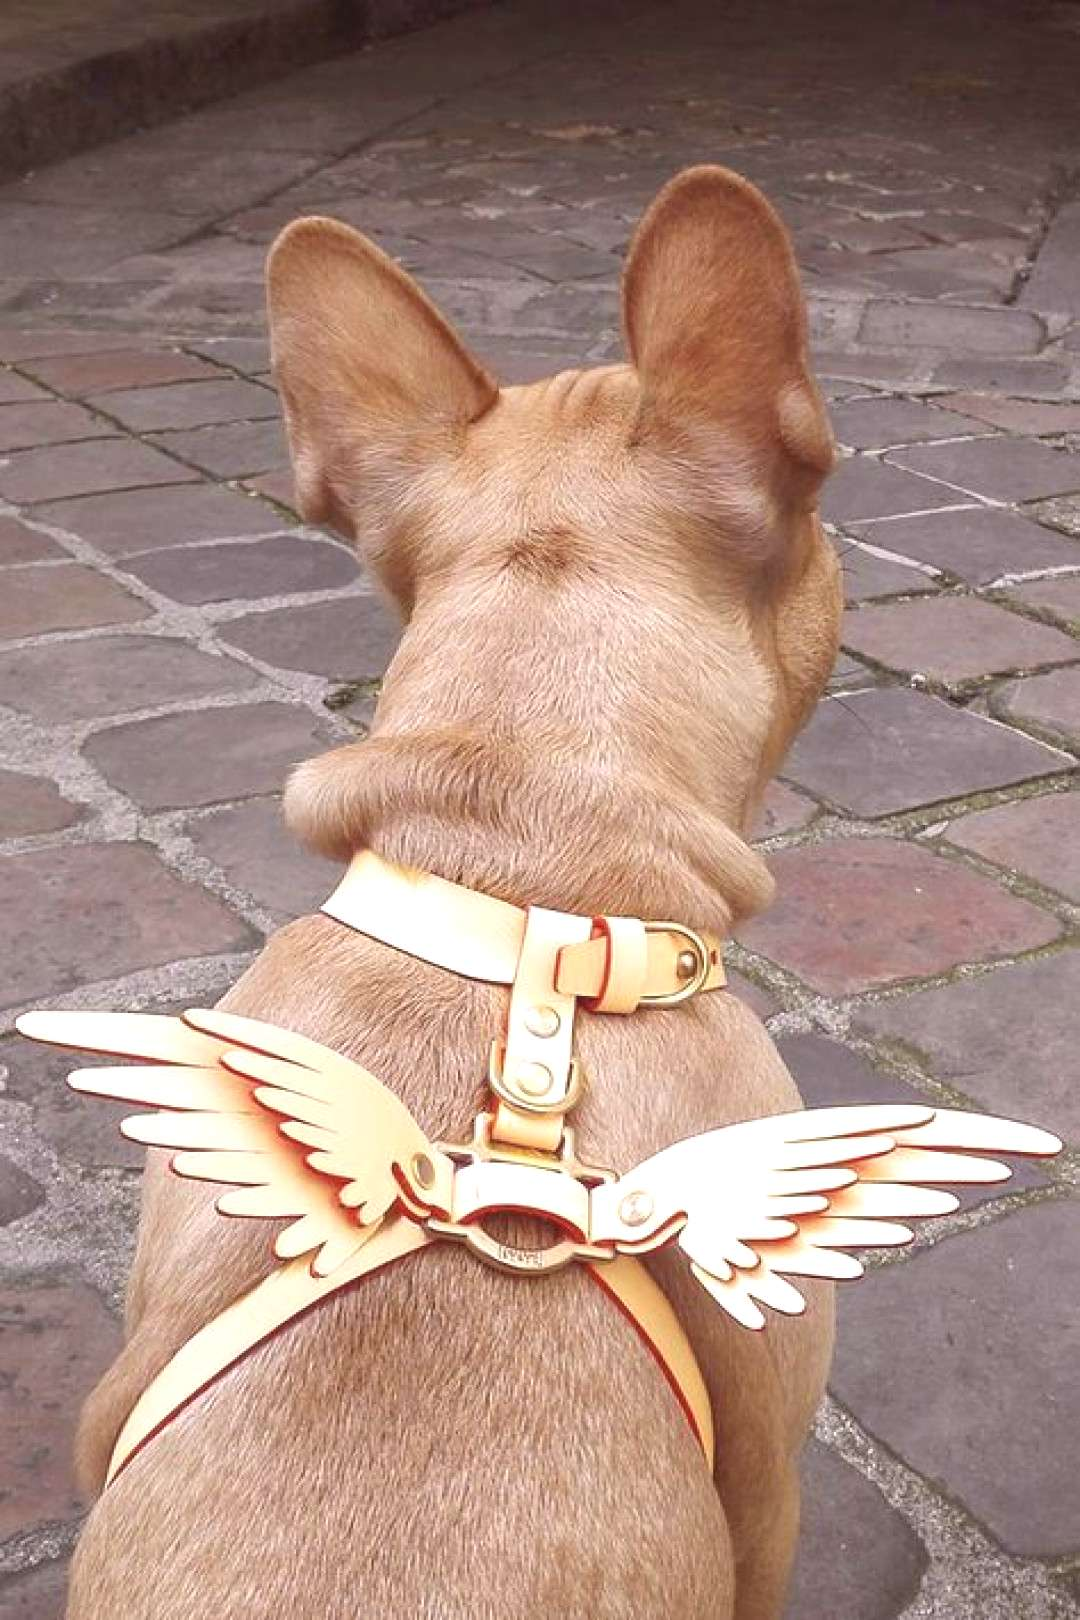 NIELS PEERAER - Wings leather dog harness - Tap the pin for the most adorable pawtastic fur baby ap